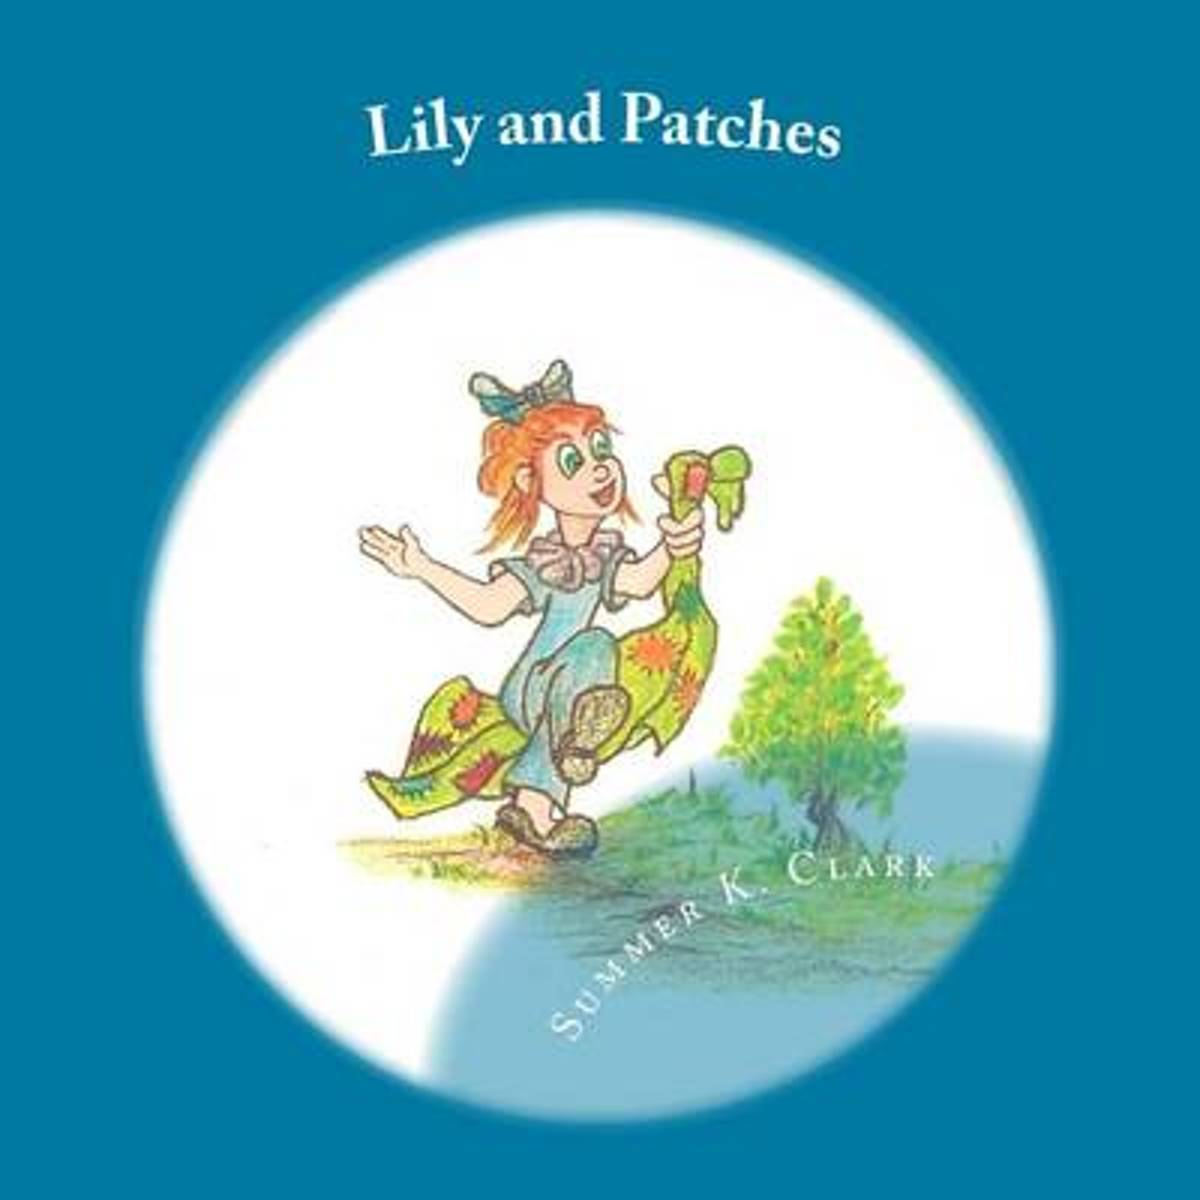 Lily and Patches